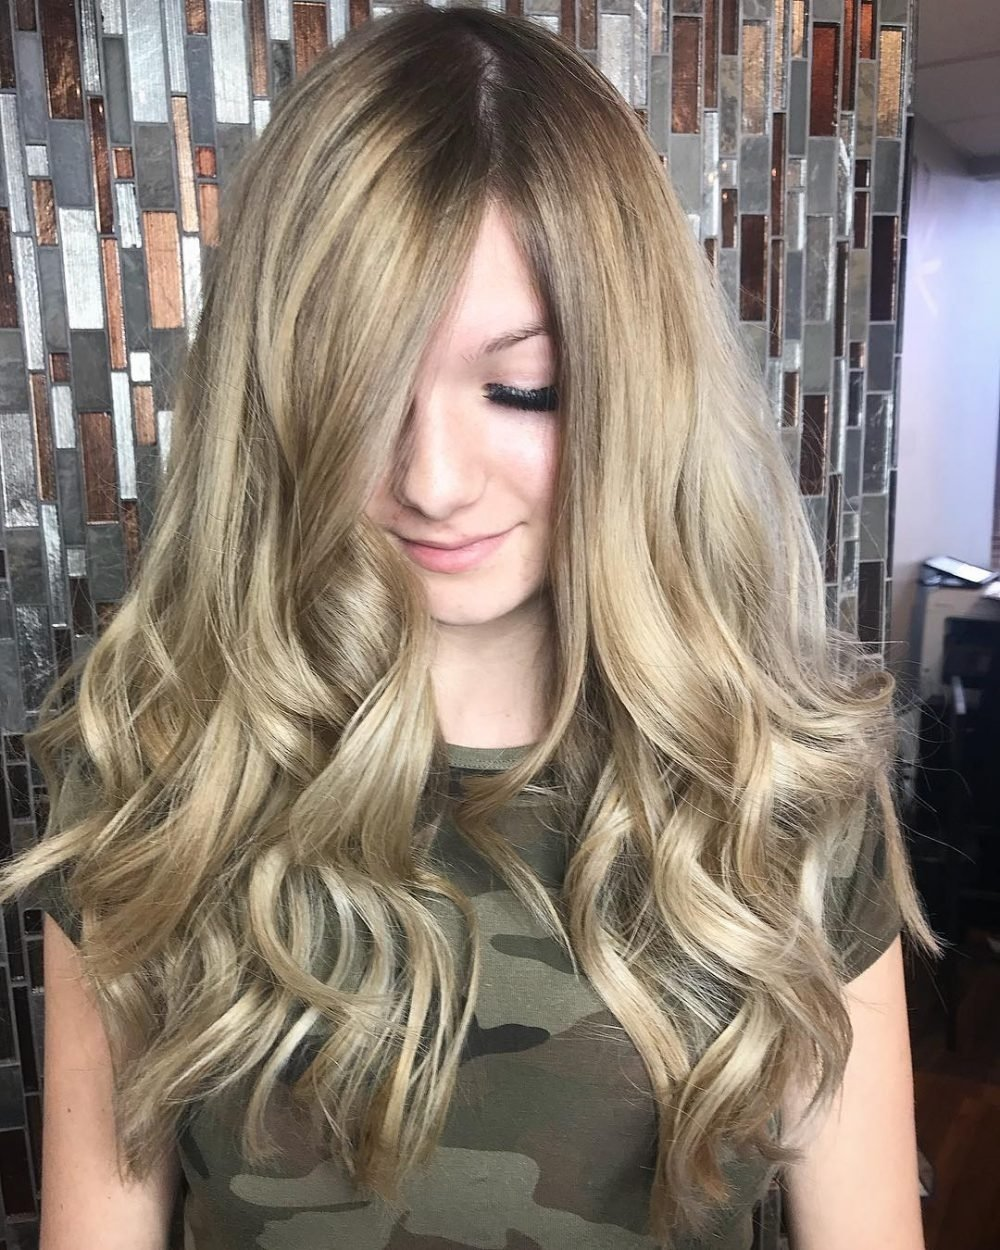 10 Famous Hairstyles Ideas For Long Hair 23 long wavy hair ideas that are freaking hot in 2018 2020